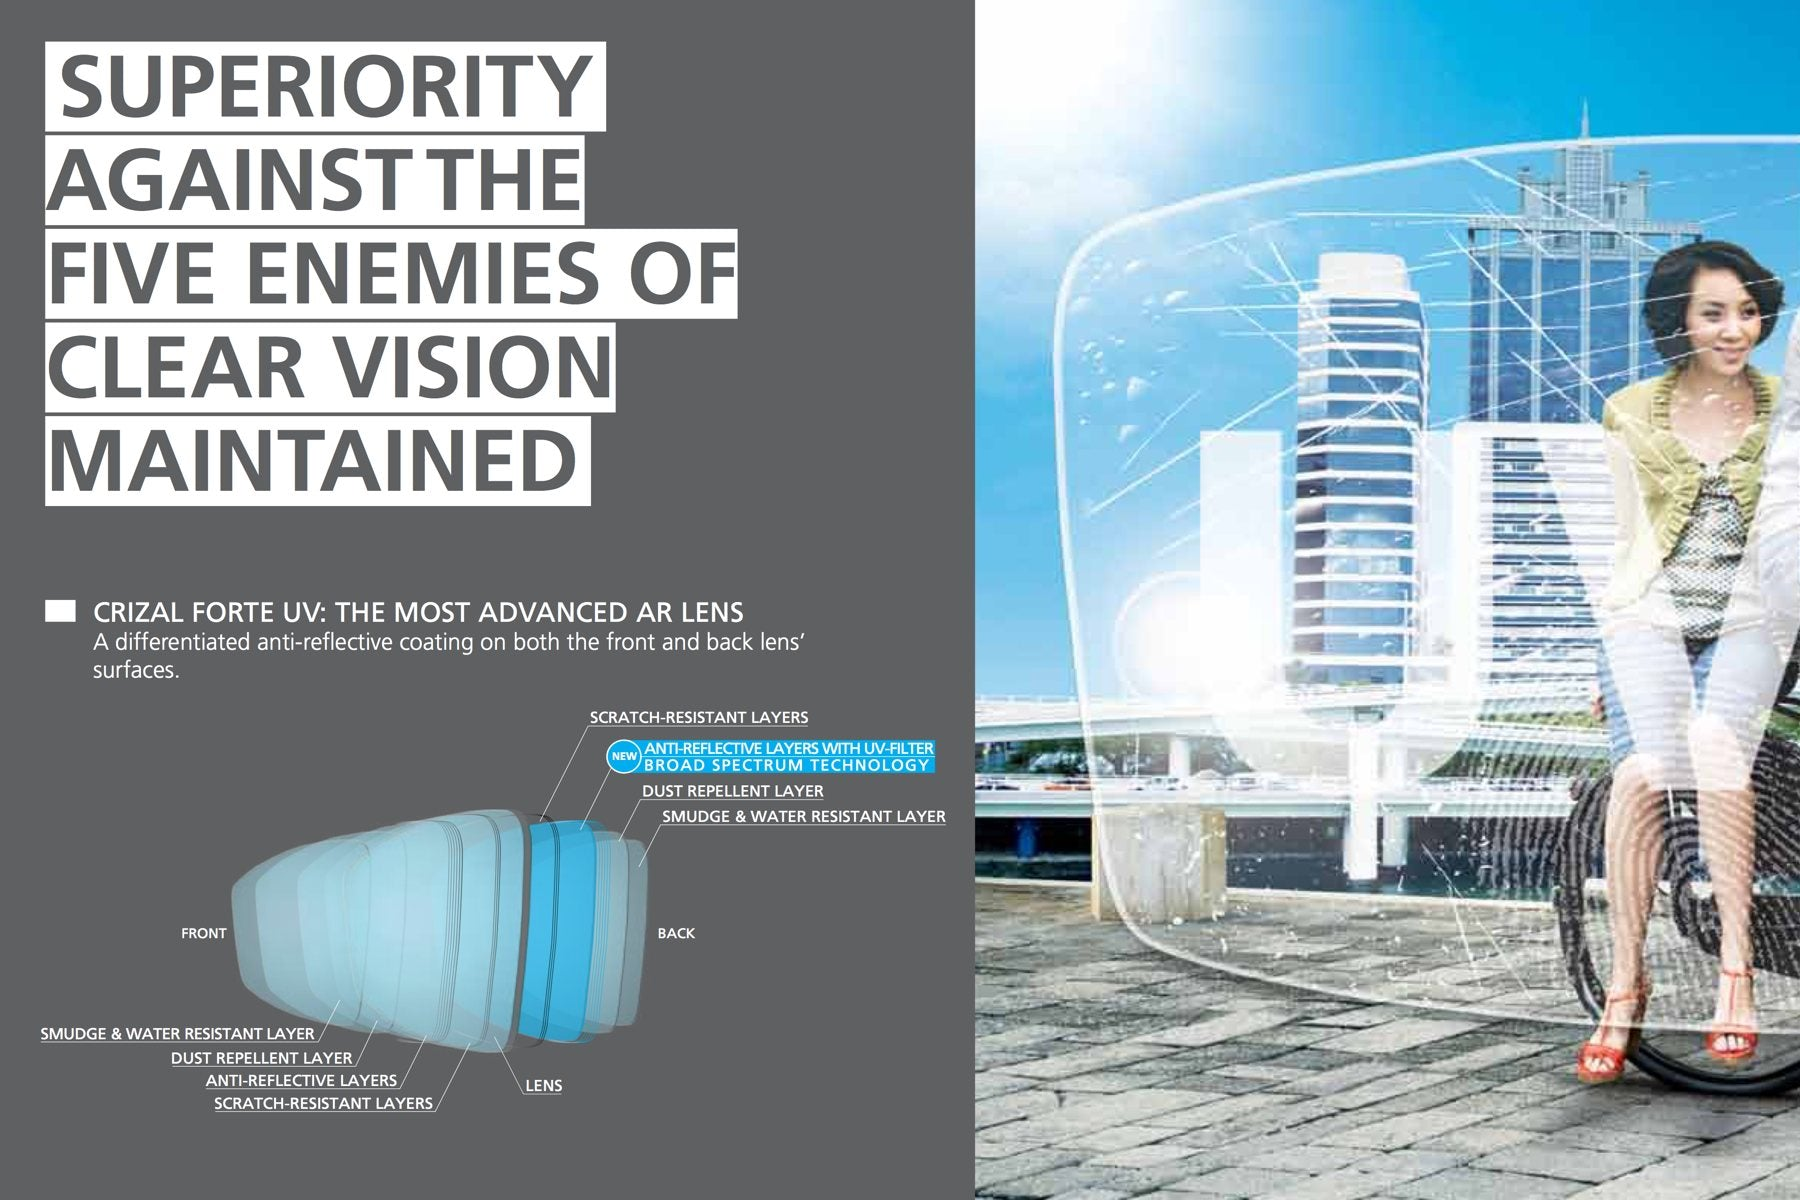 Superiority Against The Five Enemies Of Clear Vision Maintained - Crizal® Forte UV Lenses